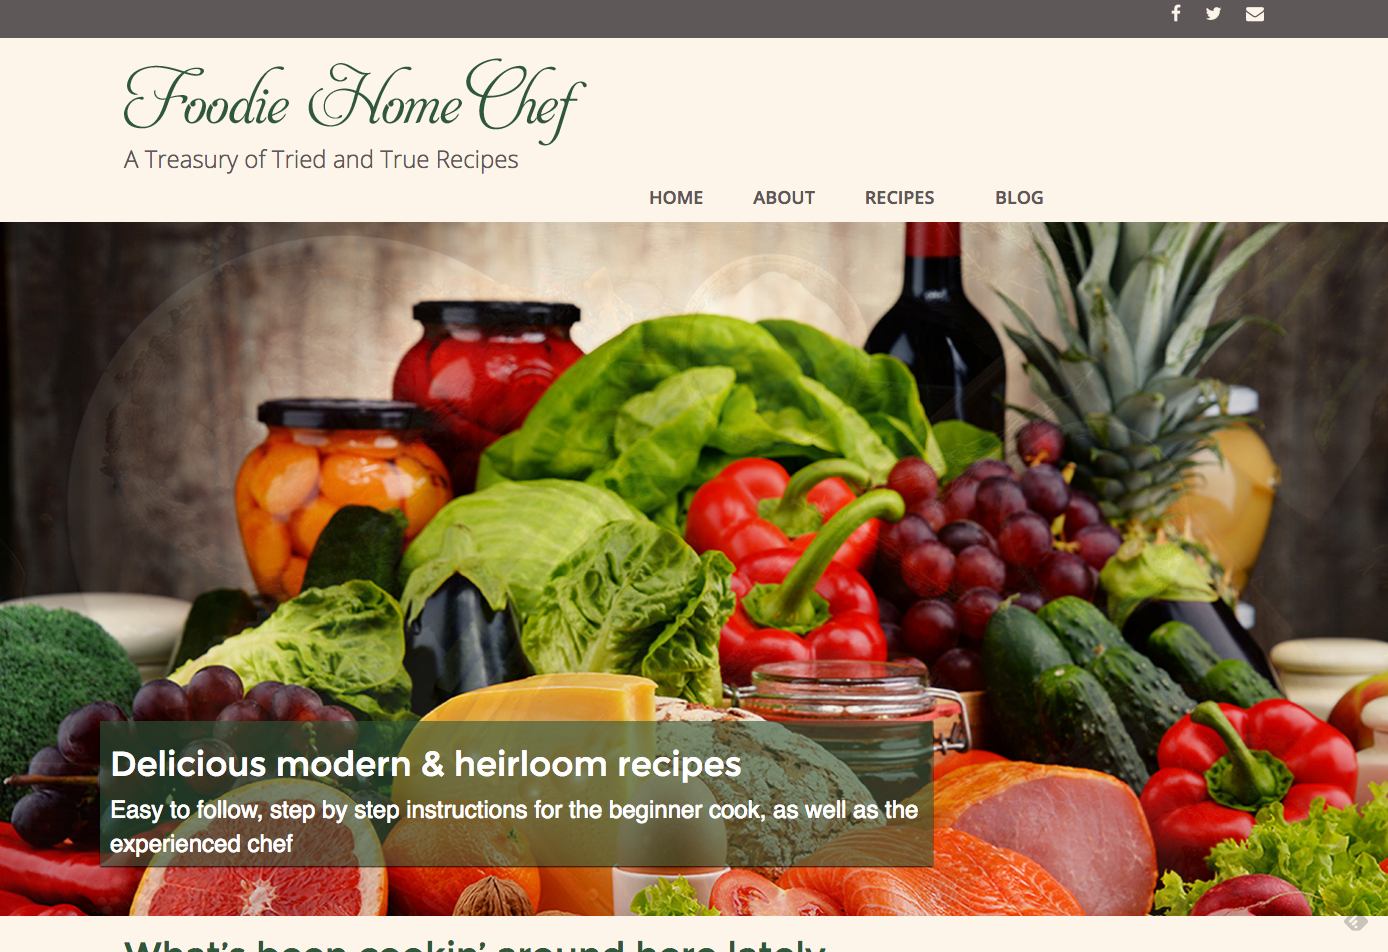 Foodie Home Chef